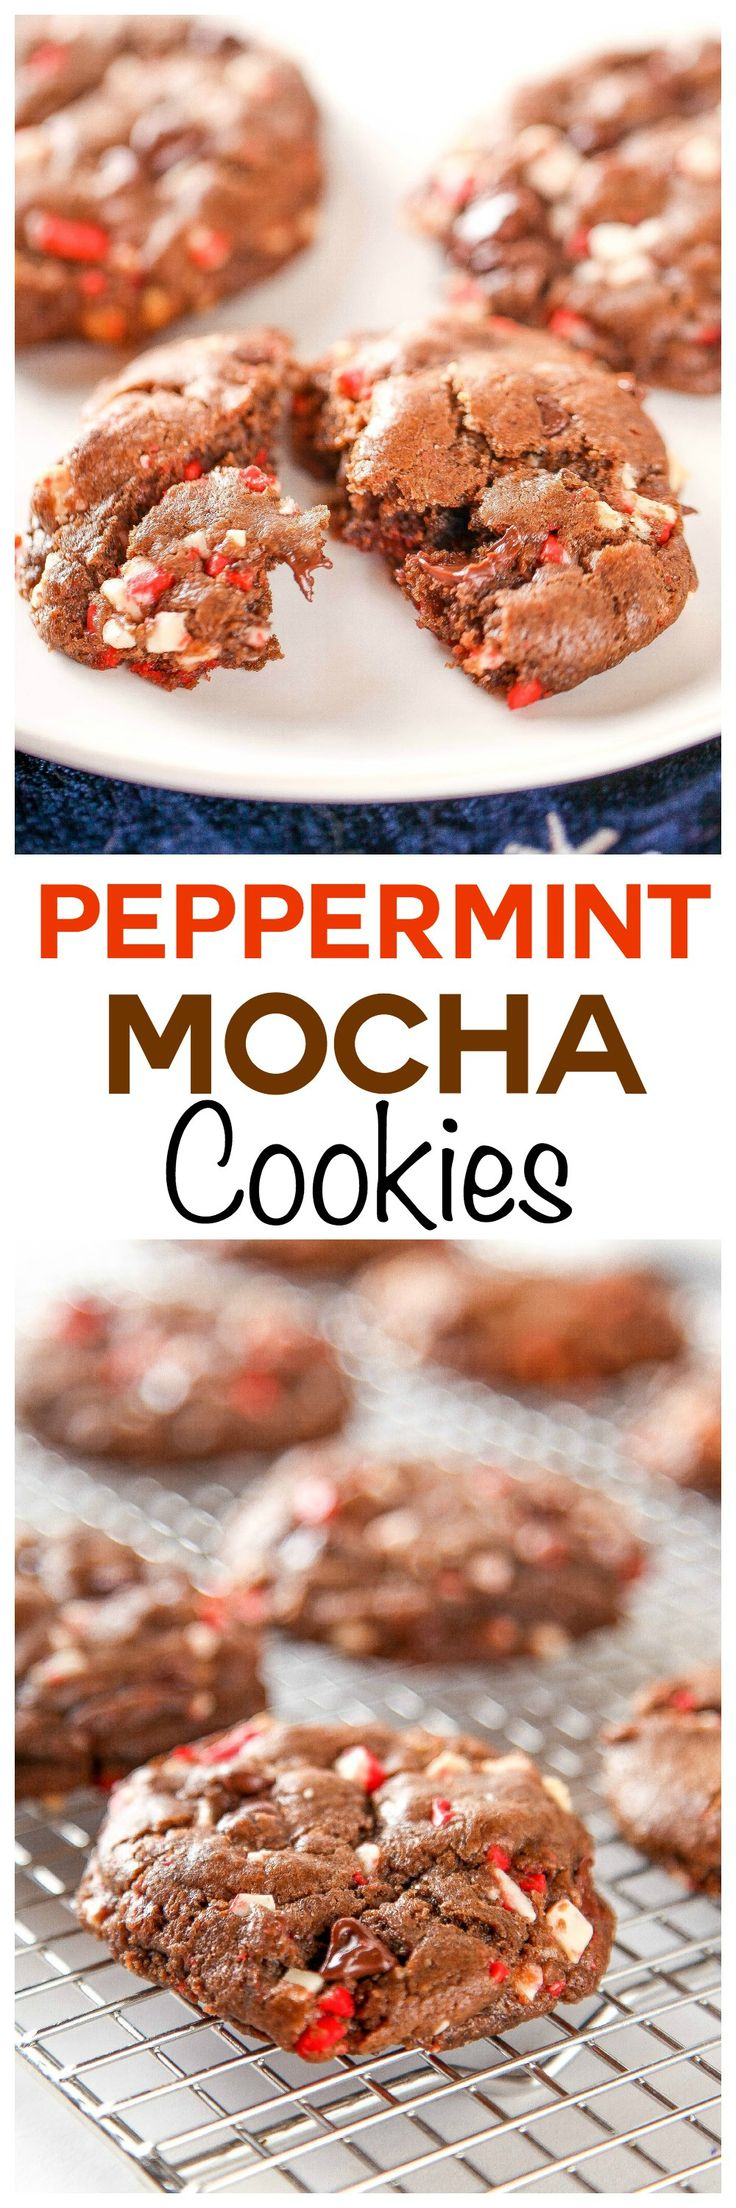 Peppermint Mocha Cookies: Soft and chewy chocolate cookies bursting with rich chocolate chips and cool peppermint crunchies. Your favorite coffee house beverage in cookie form!: